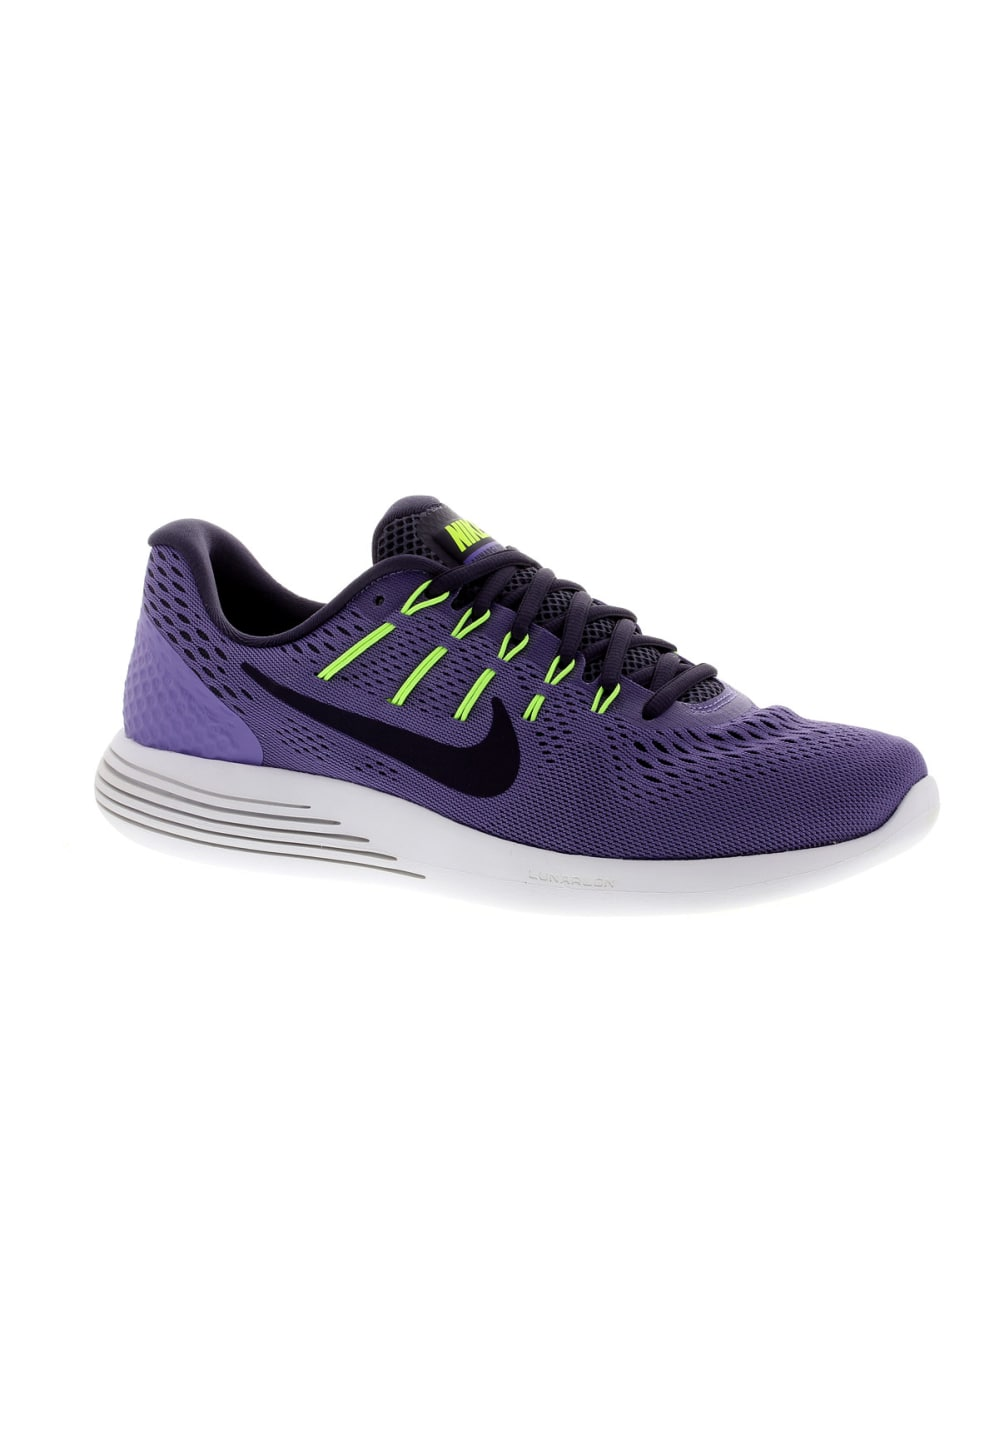 Nike Lunarglide 8 - Running shoes for Women - Purple  63b1c94479